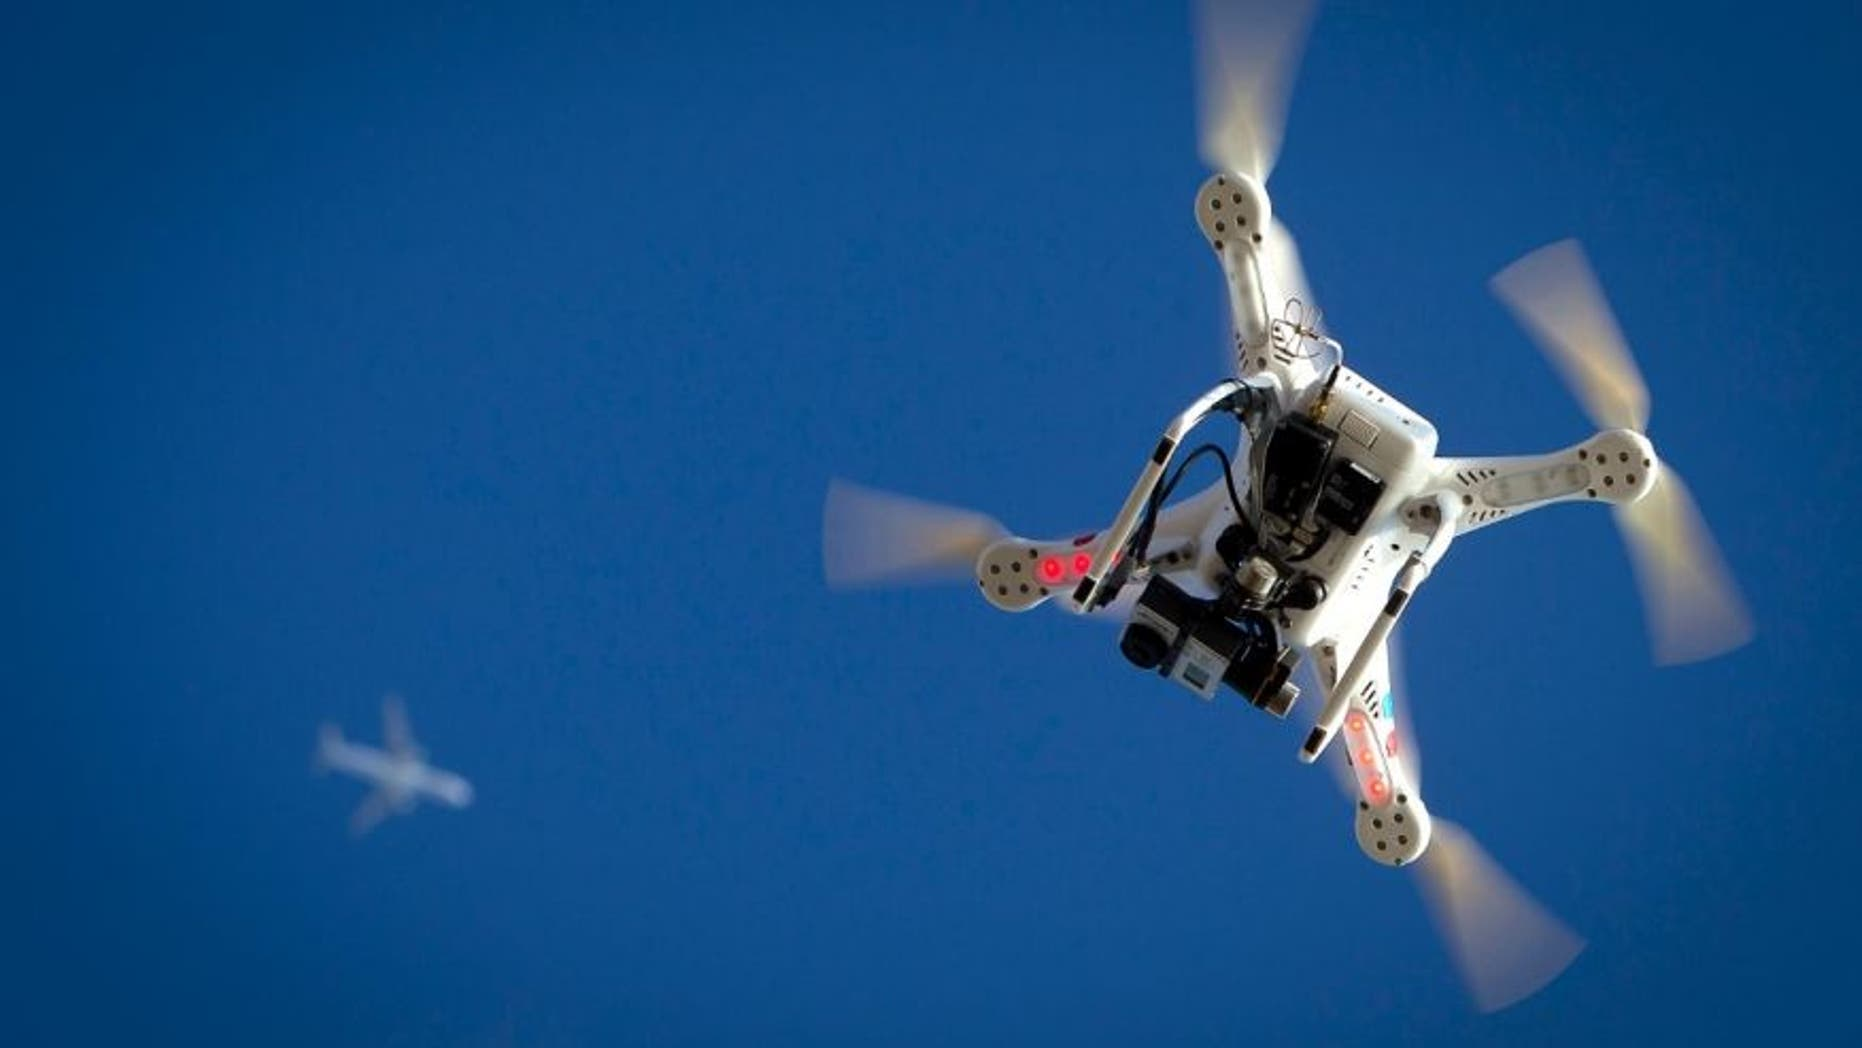 Jan. 1, 2015: An airplane flies over a drone during the Polar Bear Plunge on Coney Island in the Brooklyn borough of New York.